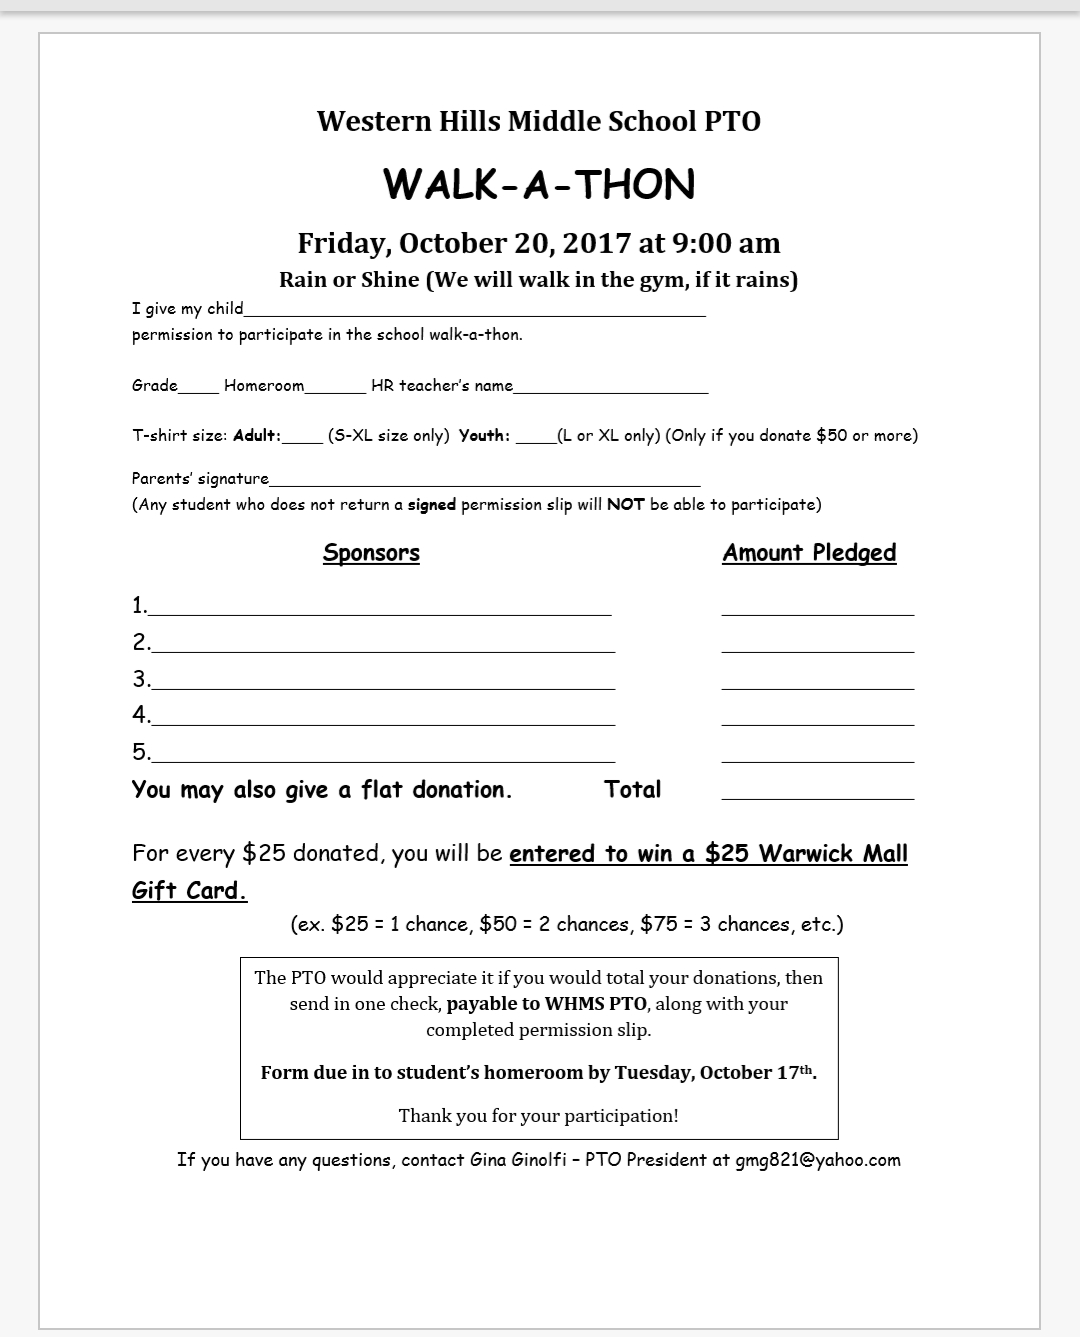 Pta Pto Monthly Budget Worksheet Today Sample For High School Students Pta Best Free Printable